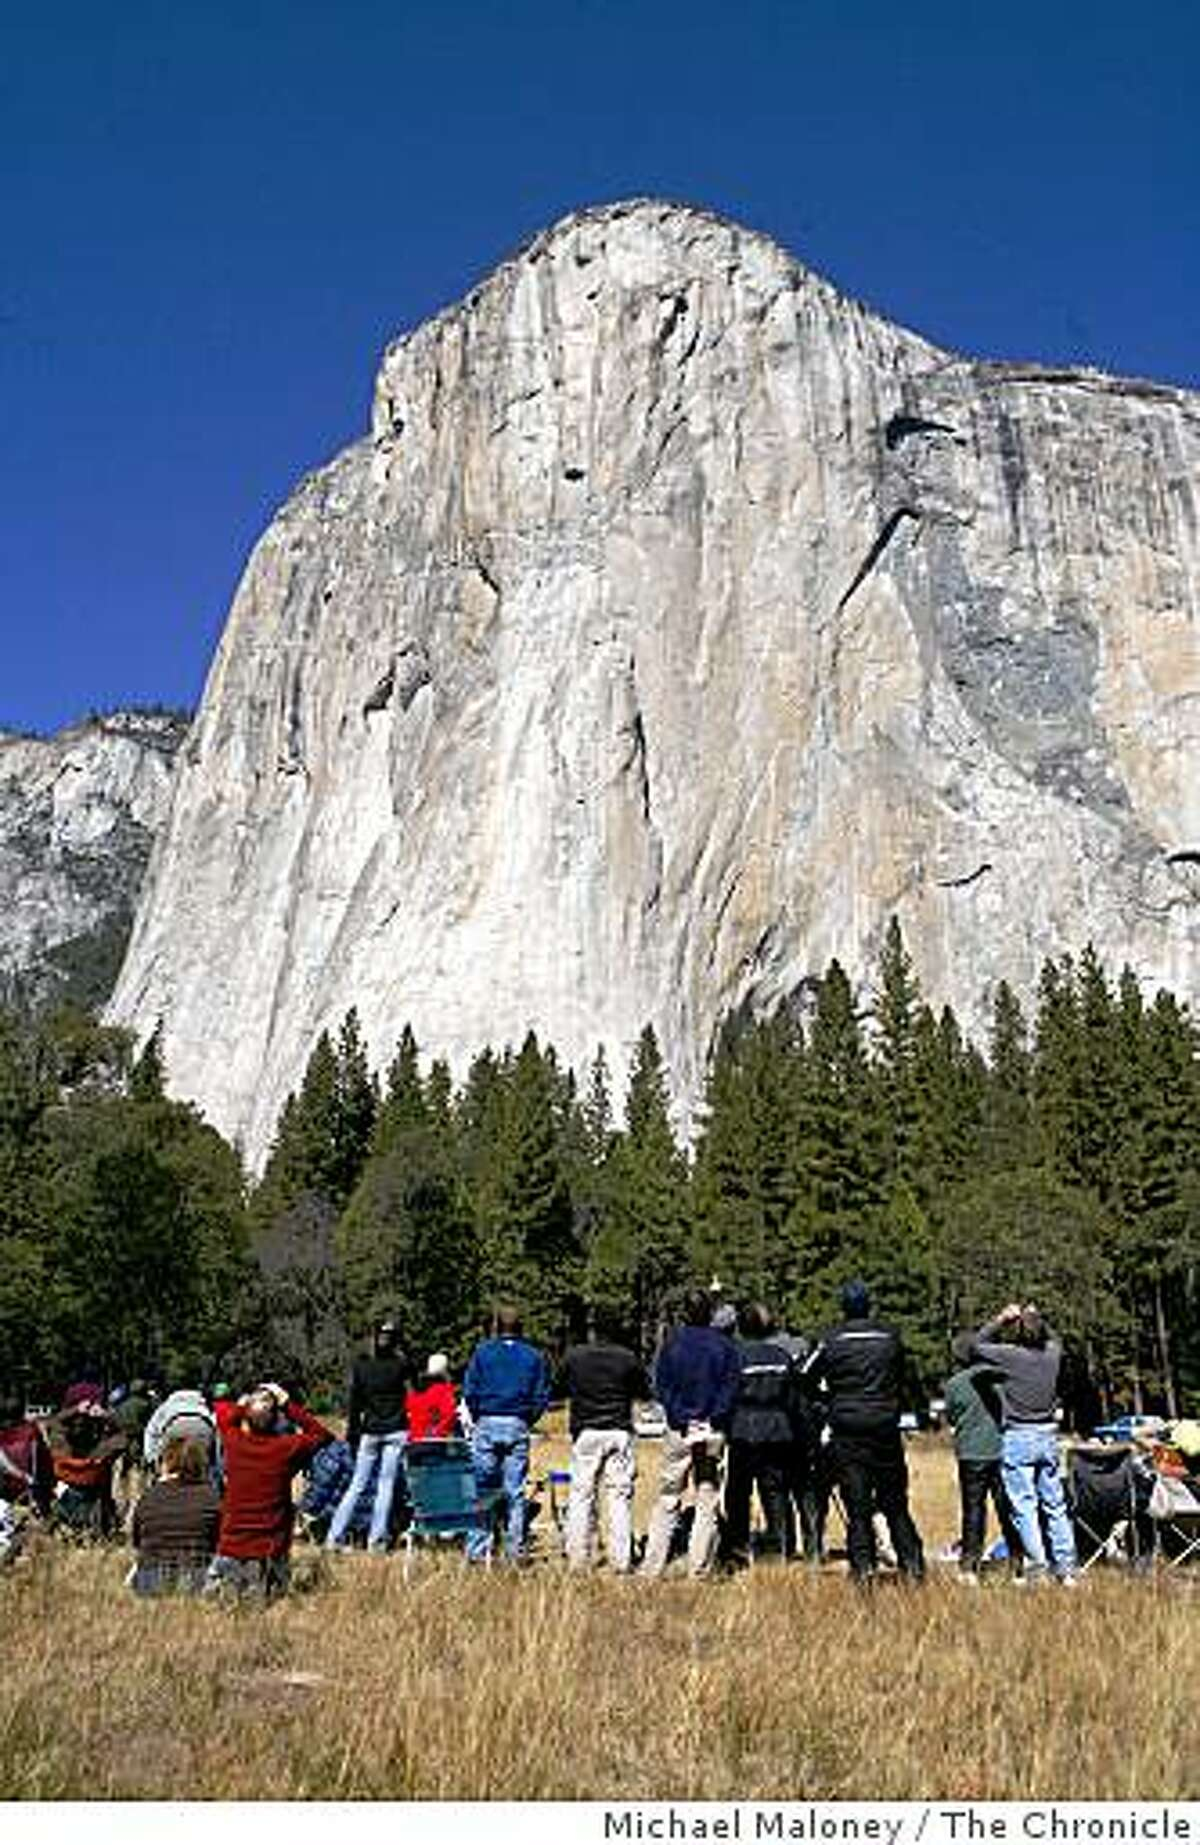 In El Capitan Meadow, over one hundred spectators watched as Hans Florine, 44, of Lafayette, Calif., and Yuji Hirayama, 39, of Hidaka, Japan, broke their own speed record climb up the Nose of the internationally famous granite cliff known as El Capitan in Yosemite National Park on Sunday, October 12, 2008. Their time was 2 hours, 37 minutes and 5 seconds, beating their old record by over 6 minutes.